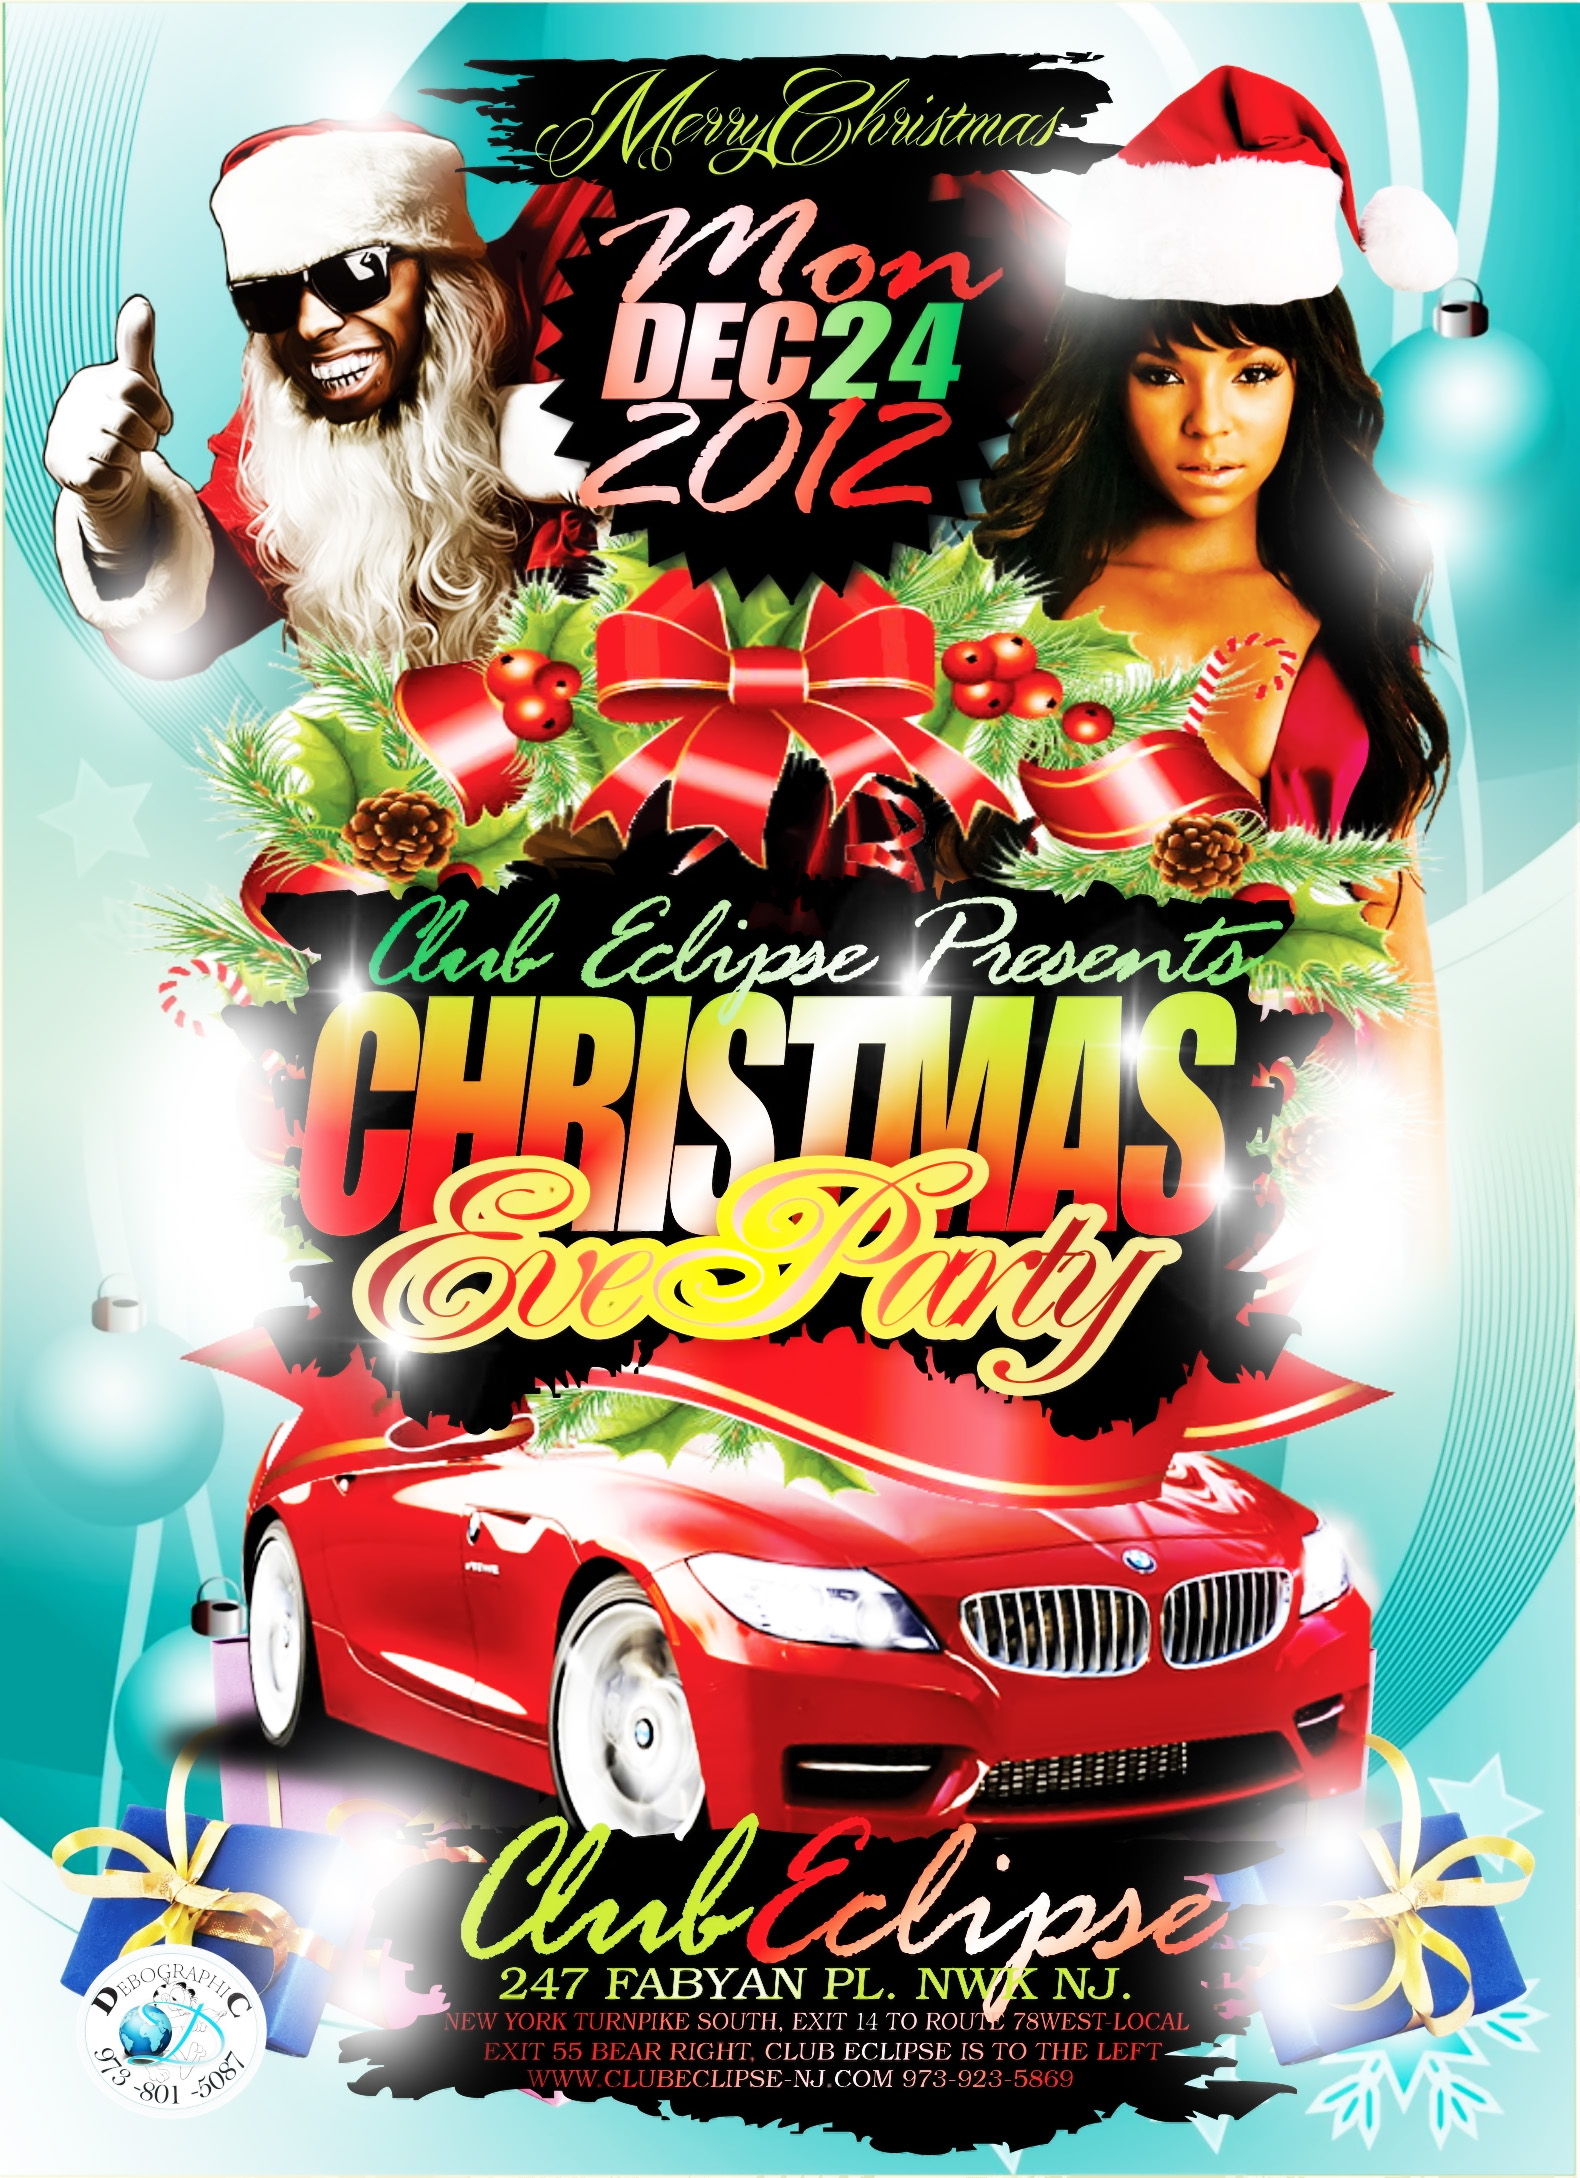 featured flyer 2 debographic call 973 801 5087 for flyers